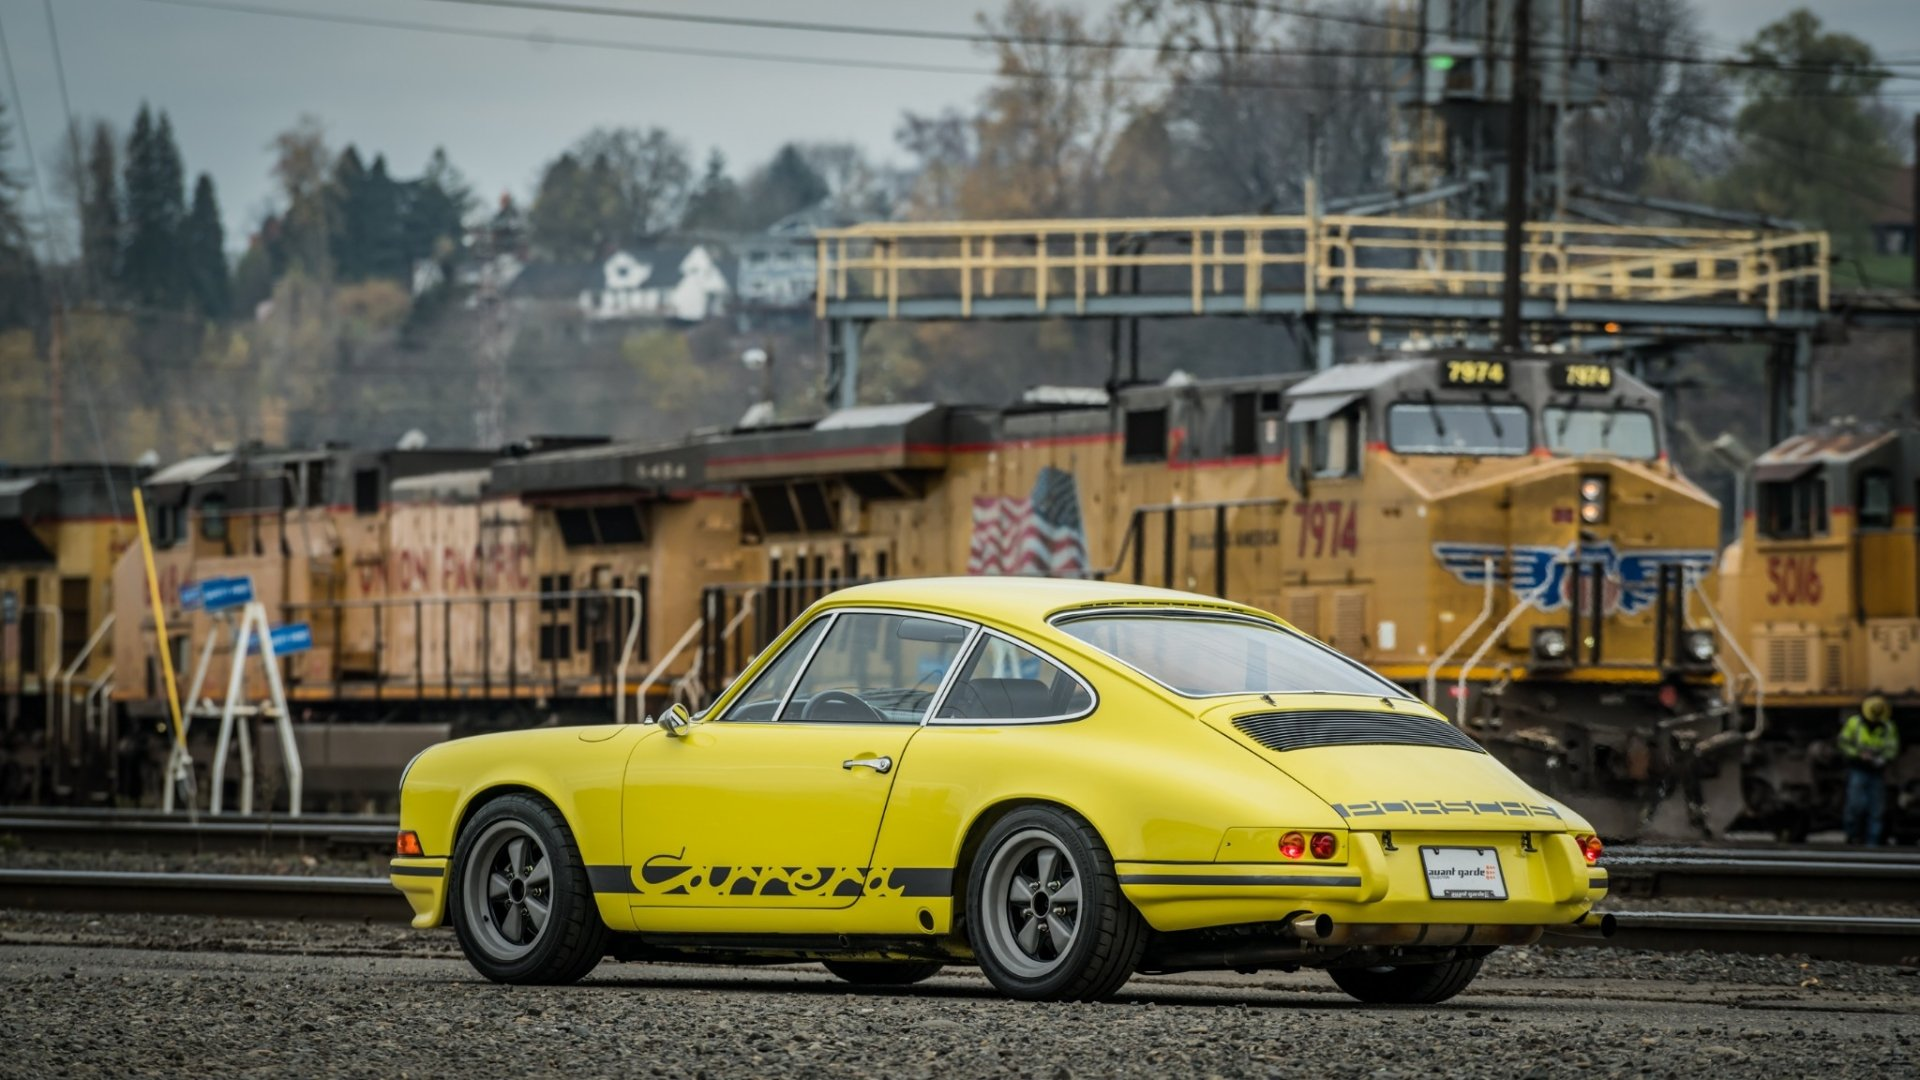 Vehicles - Porsche 911 Carrera T  Car Train Sport Car Old Car Yellow Car Wallpaper